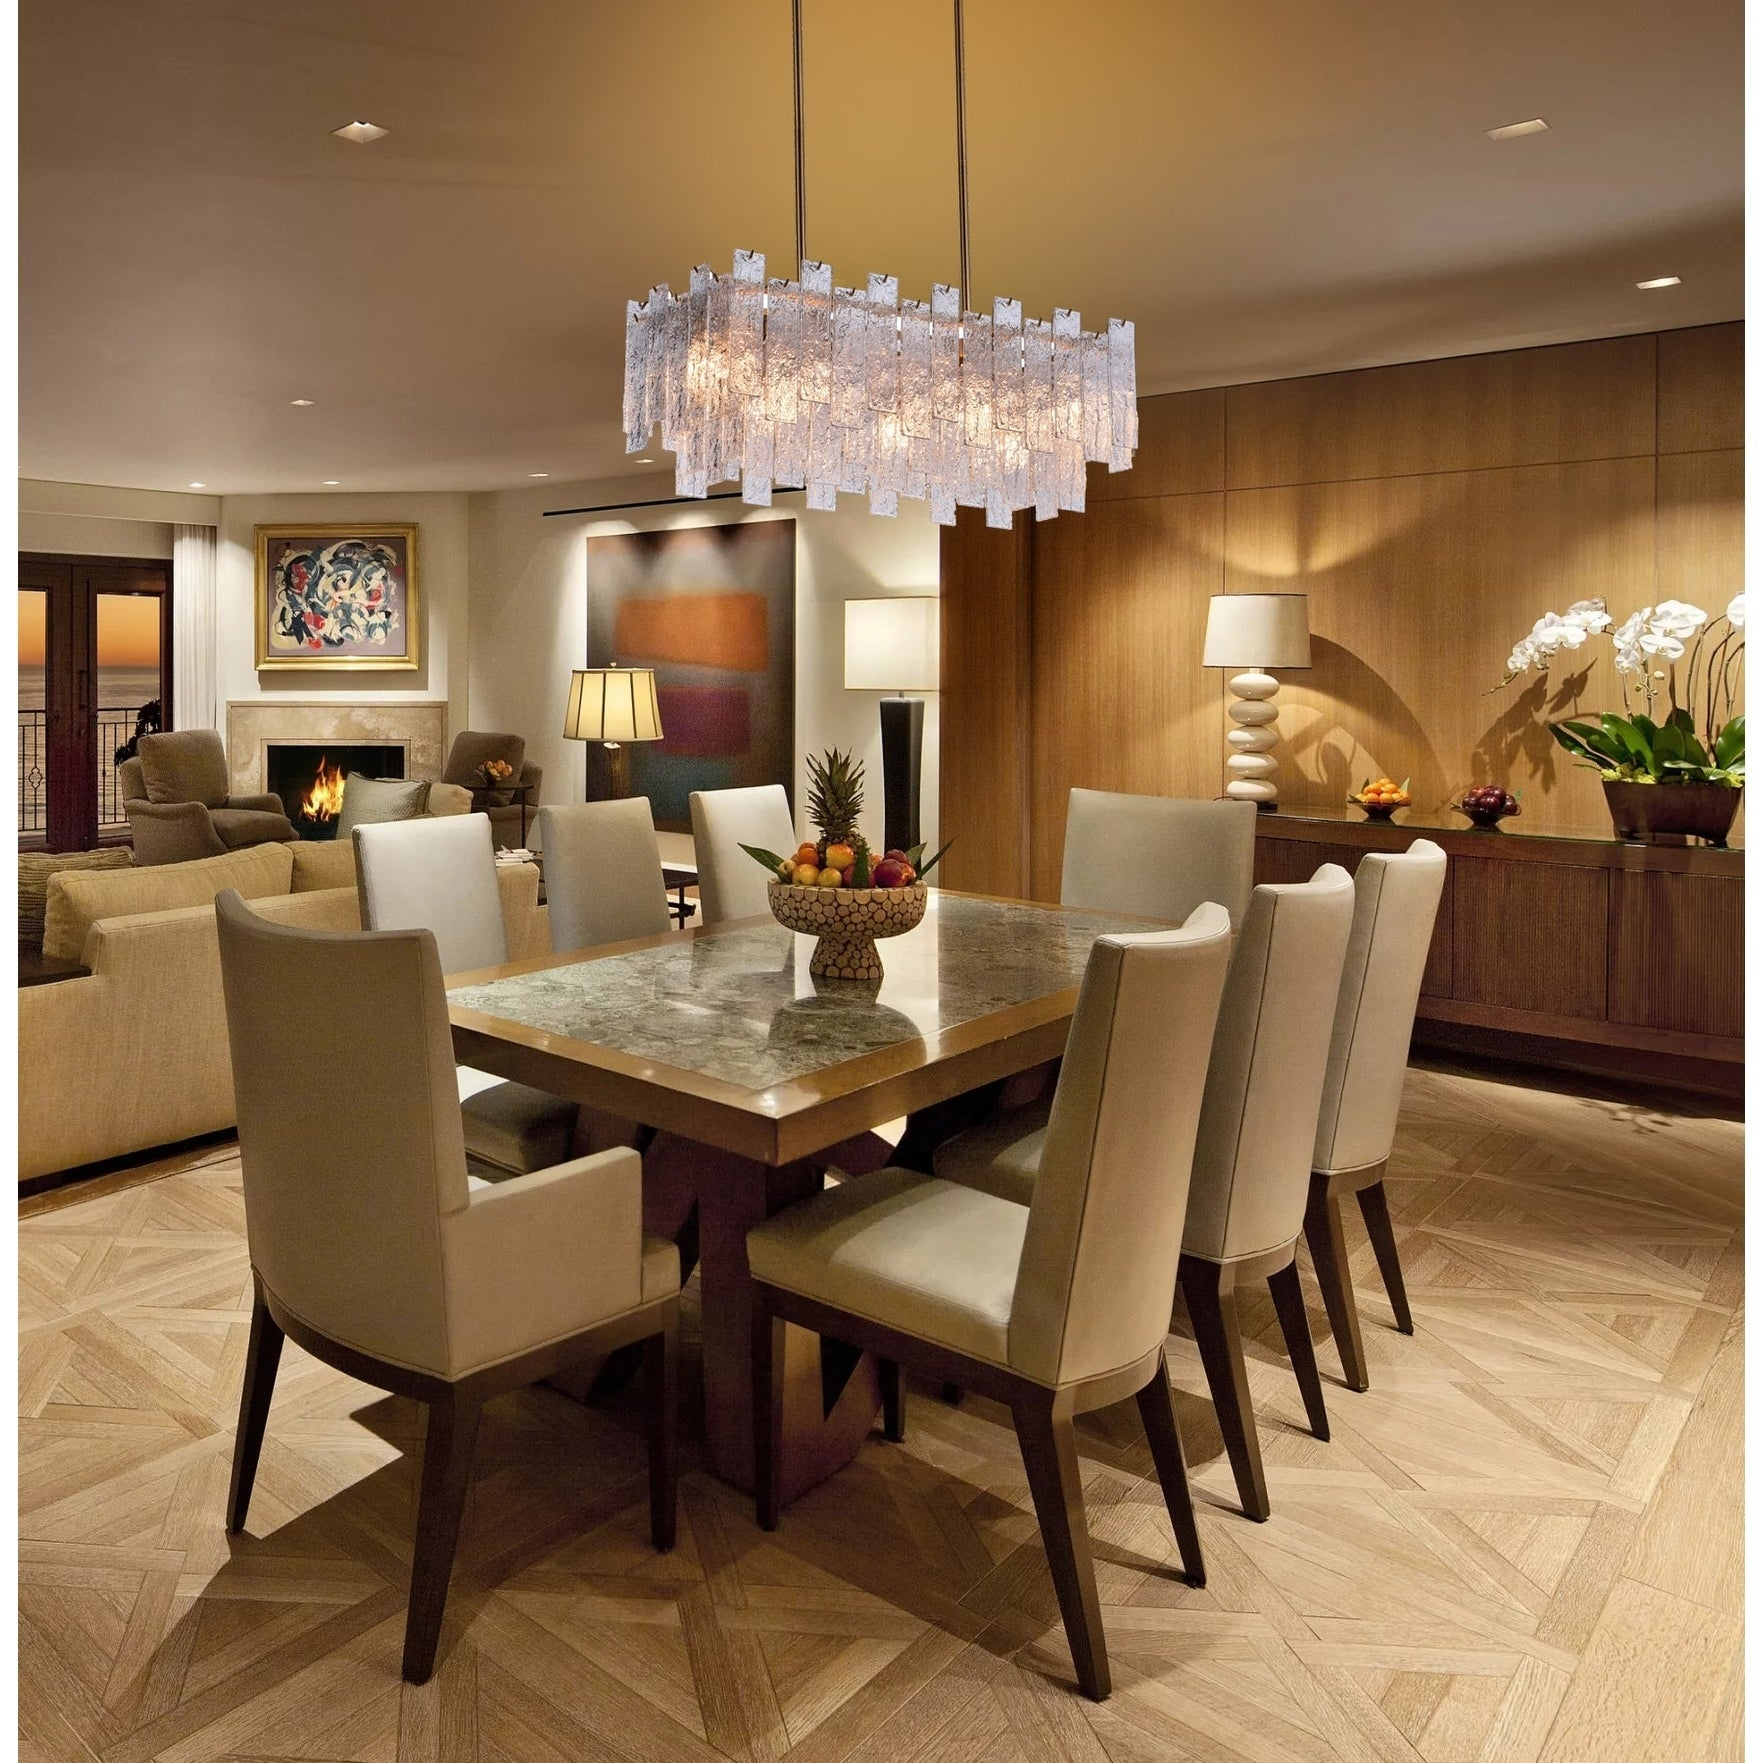 Rectangular Crystal modern contemporary mid-century Dining Living room  chandelier with Warm Brass Finish